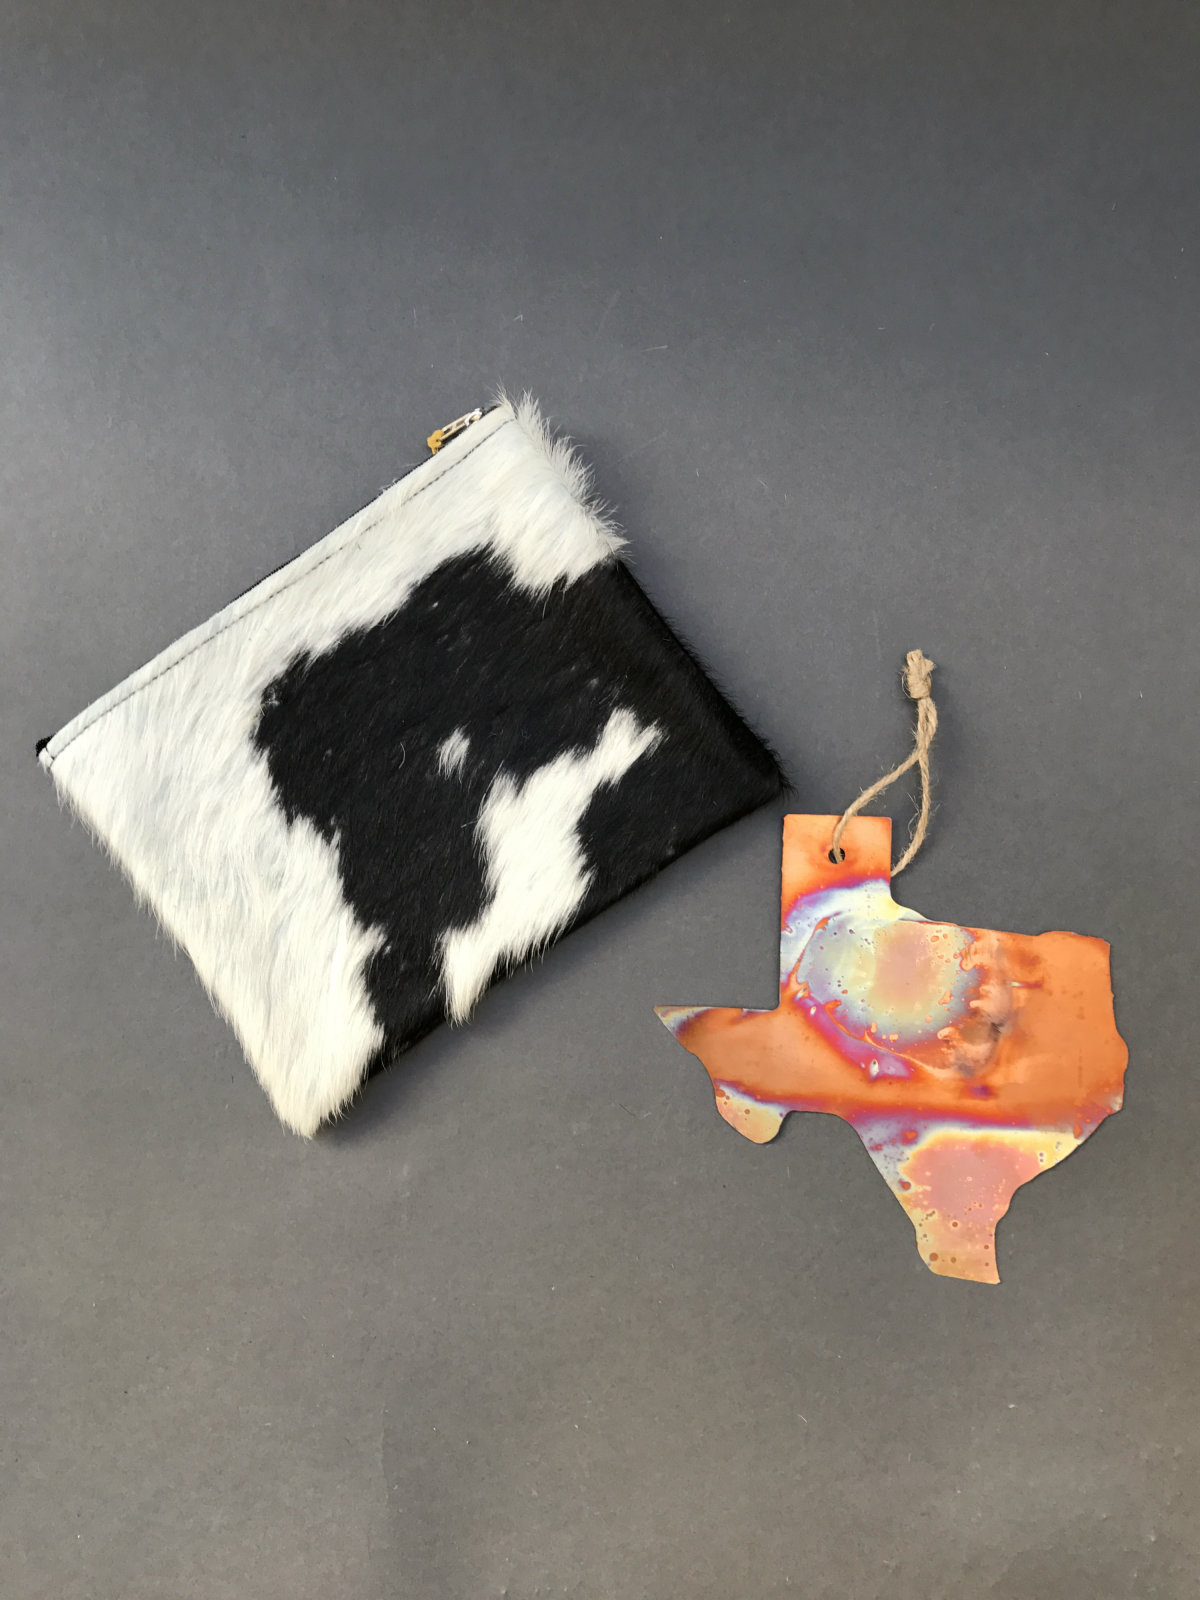 Dallas Antiques Company cowhide pouch and Texas ornament